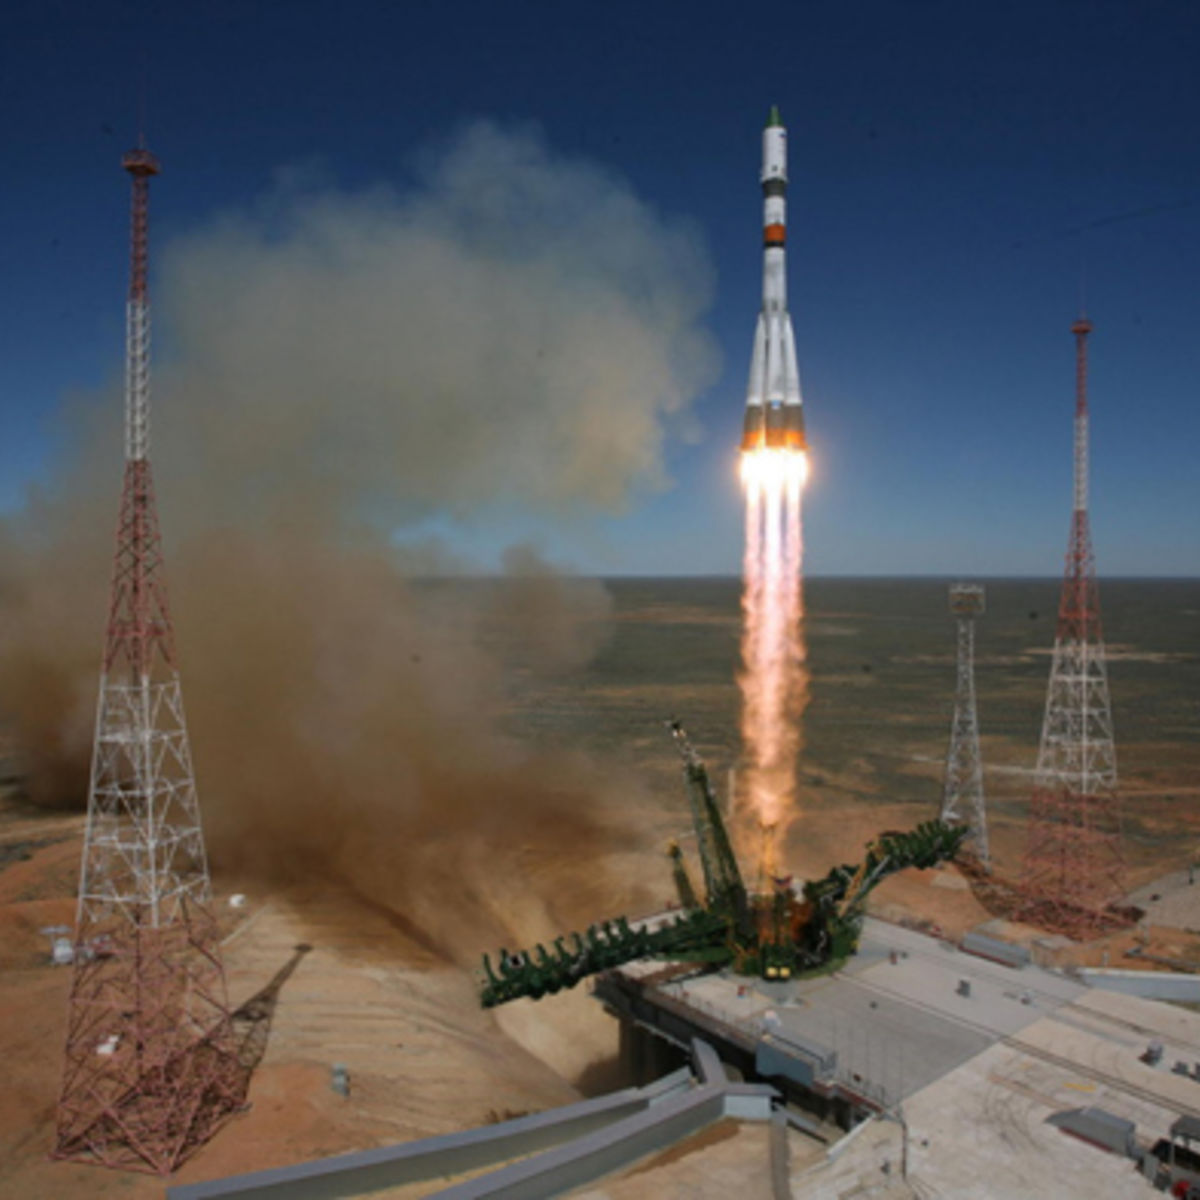 soyuz_progress_launch.jpg